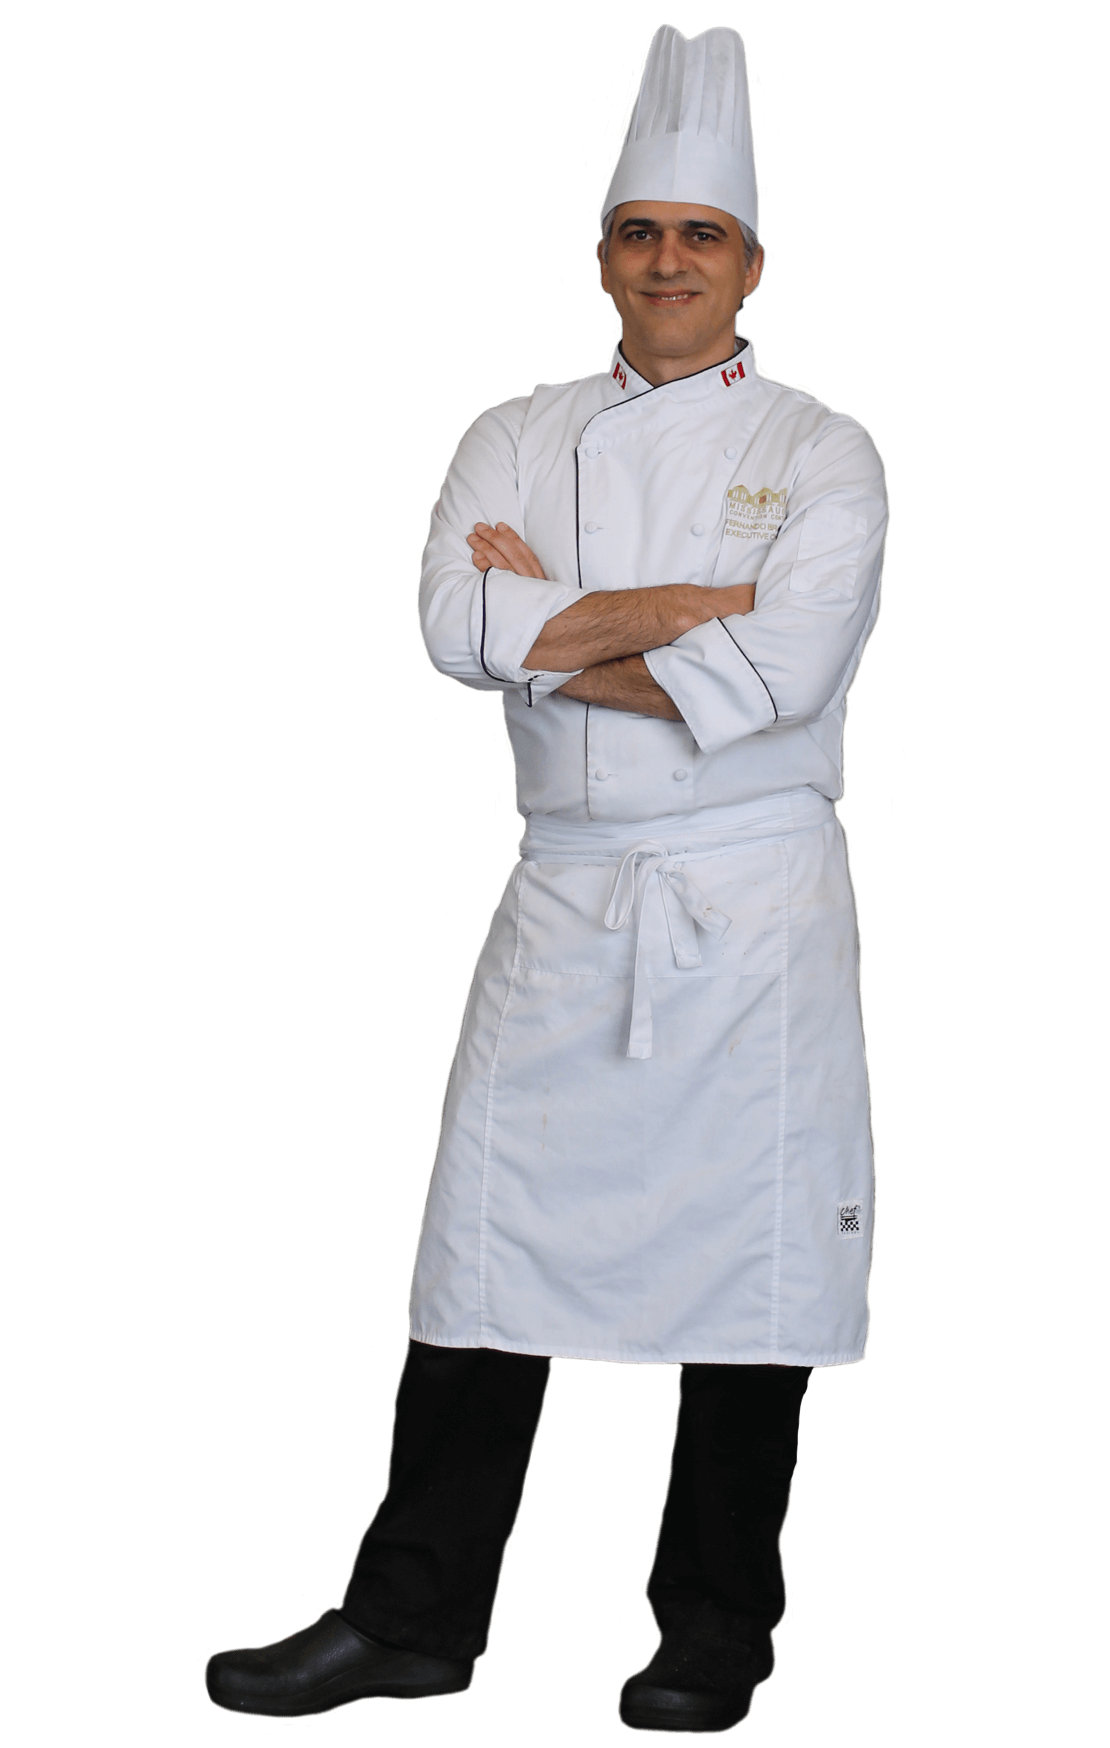 Asian Chef PNG